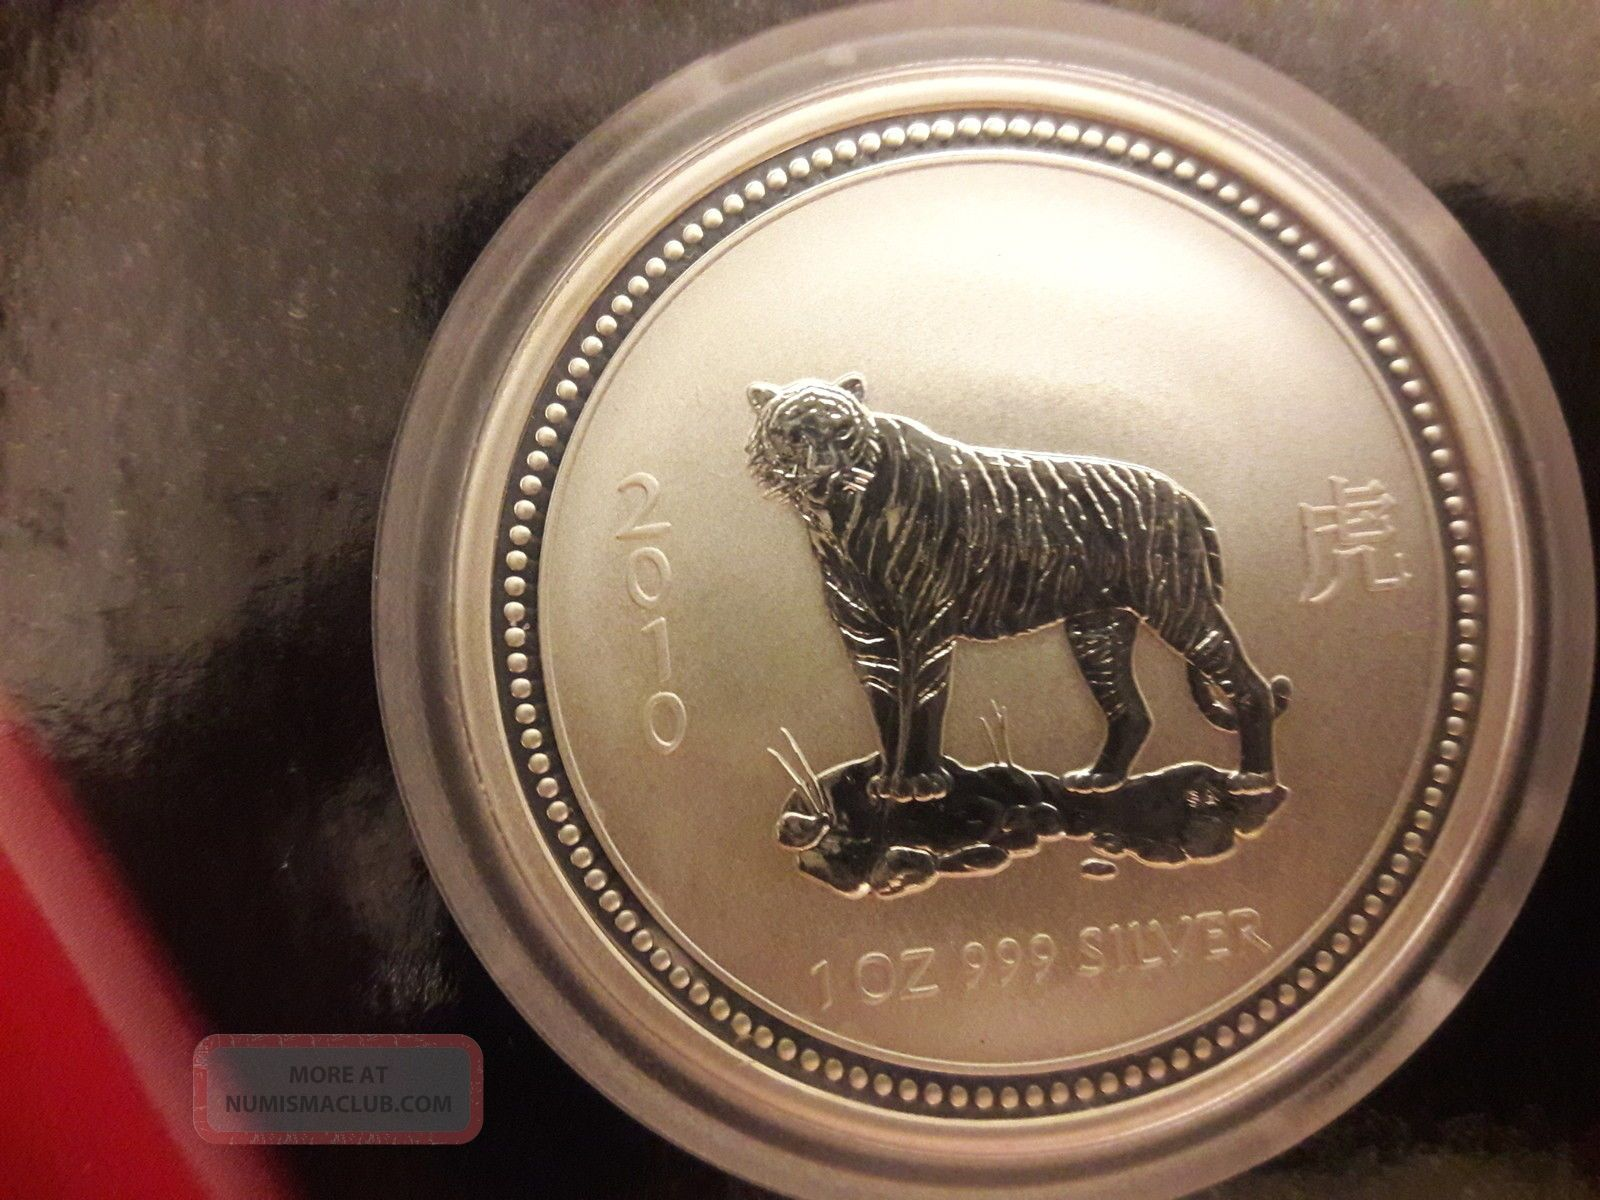 2007/2010 Australian Lunar Year Of The Tiger 1oz Pure.  999 Silver In Capsule Bu Australia photo